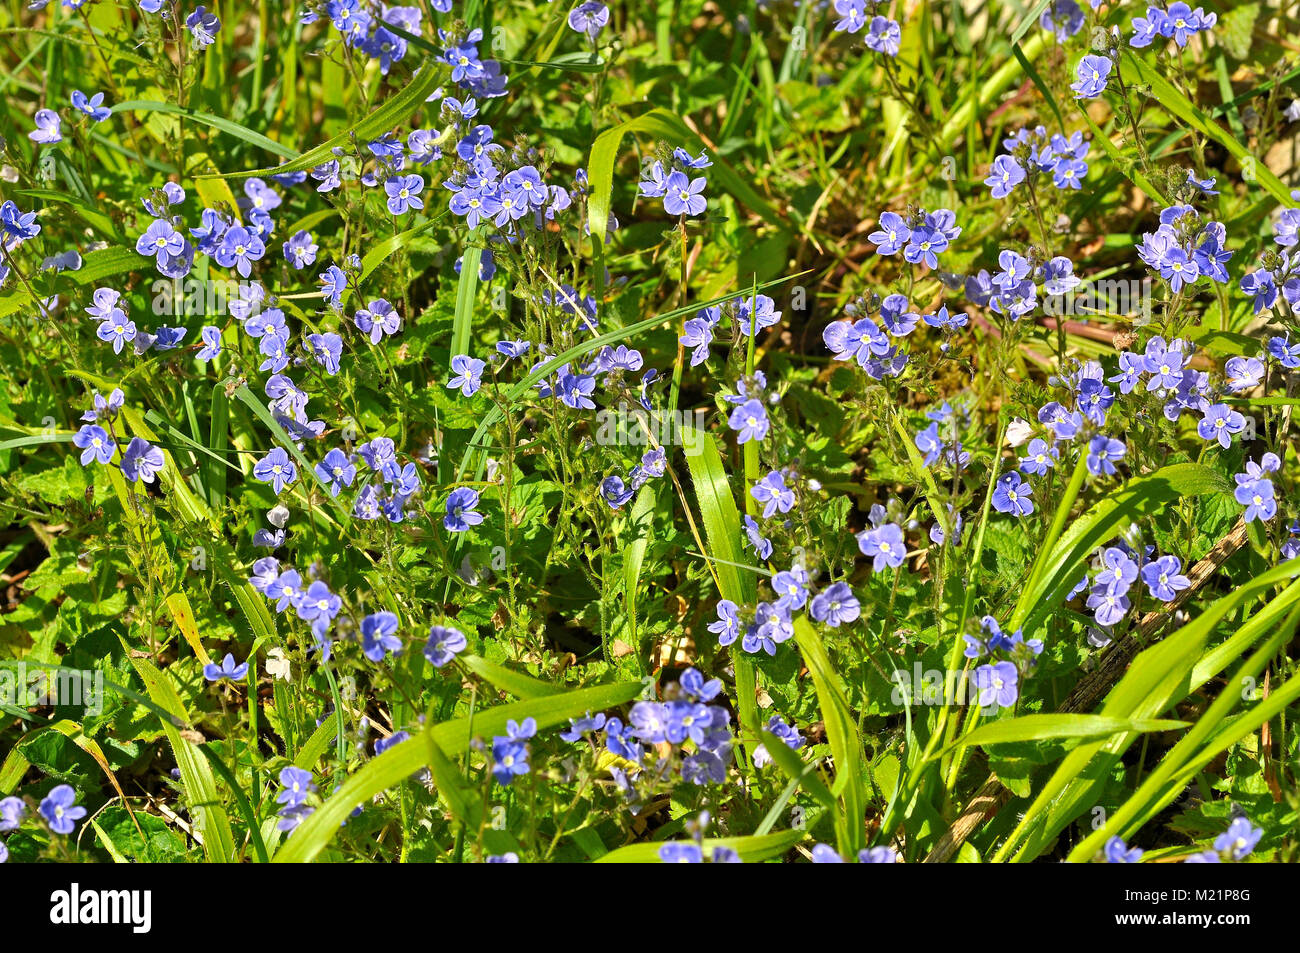 Forget-me-not flowers in Farley Mount, Winchester, Hampshire, UK. - Stock Image